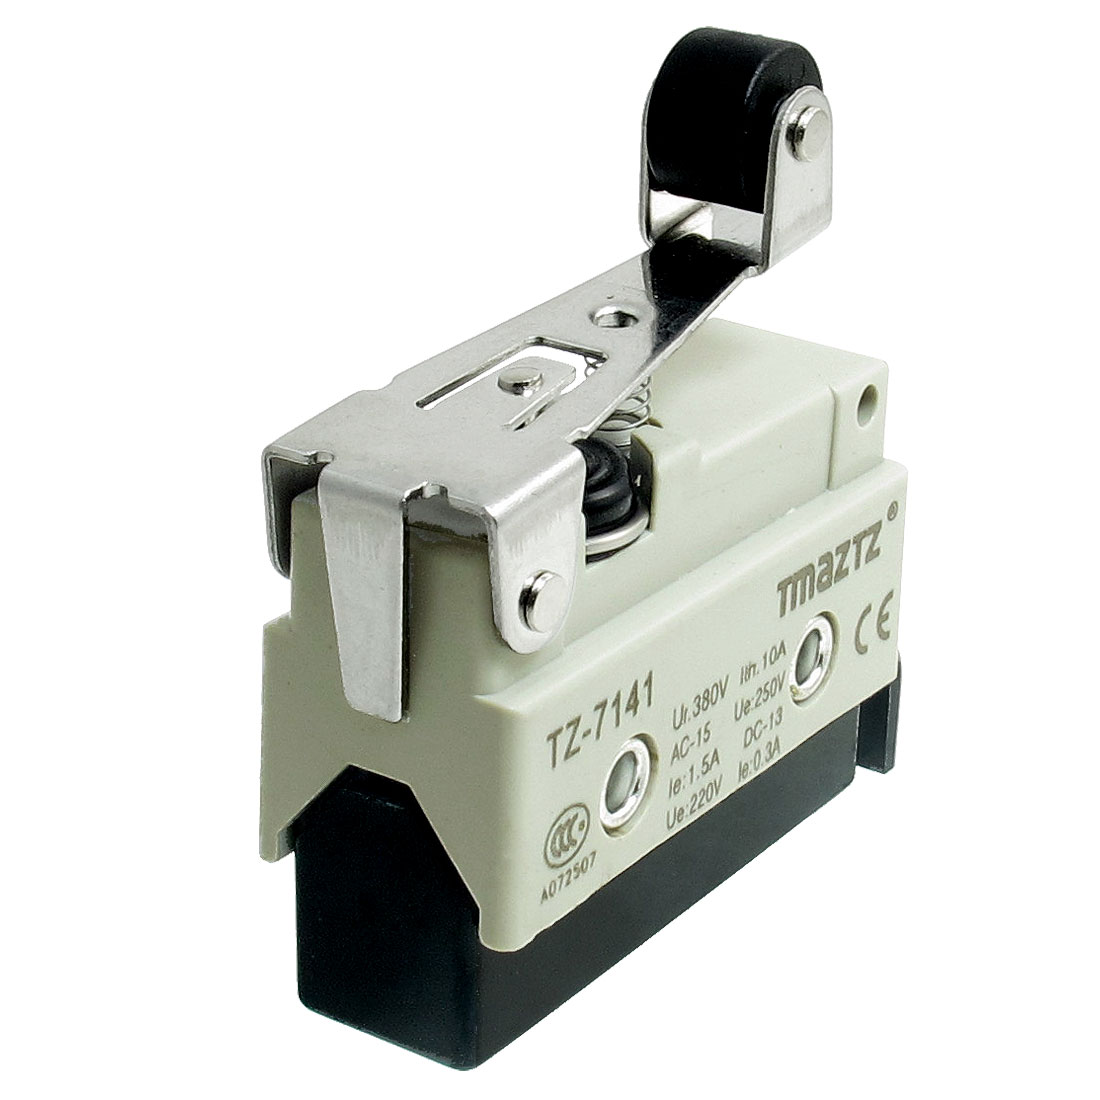 TZ-7141 Short Hinge Roller Lever Momentary Micro Limit Switch